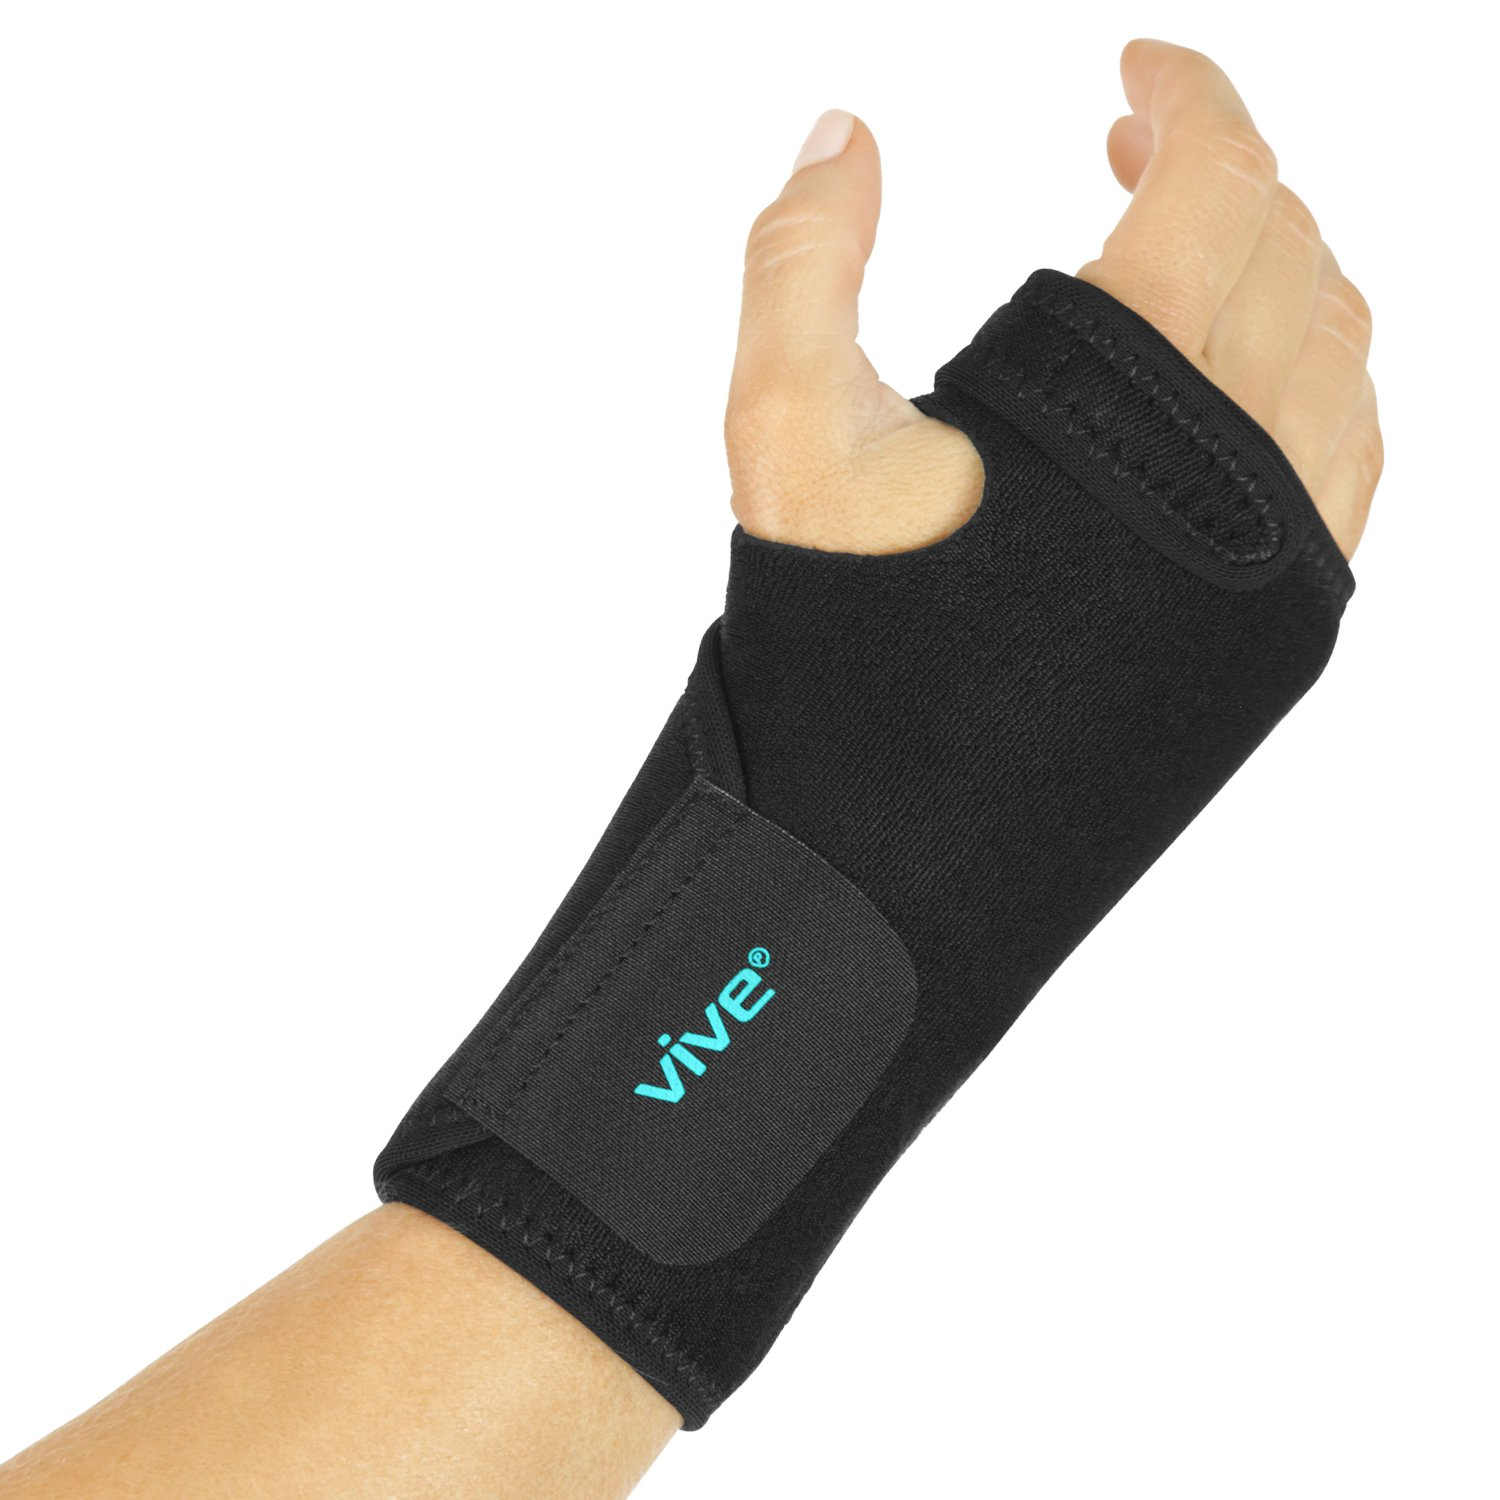 Vive Wrist Brace - Left or Right Hand Compression Support Wrap for Carpal Tunnel, Tendinitis, Bowling, Sports Injuries Pain Relief - Removable Splint - Universal Ergonomic Fit, One Size - Men, Women